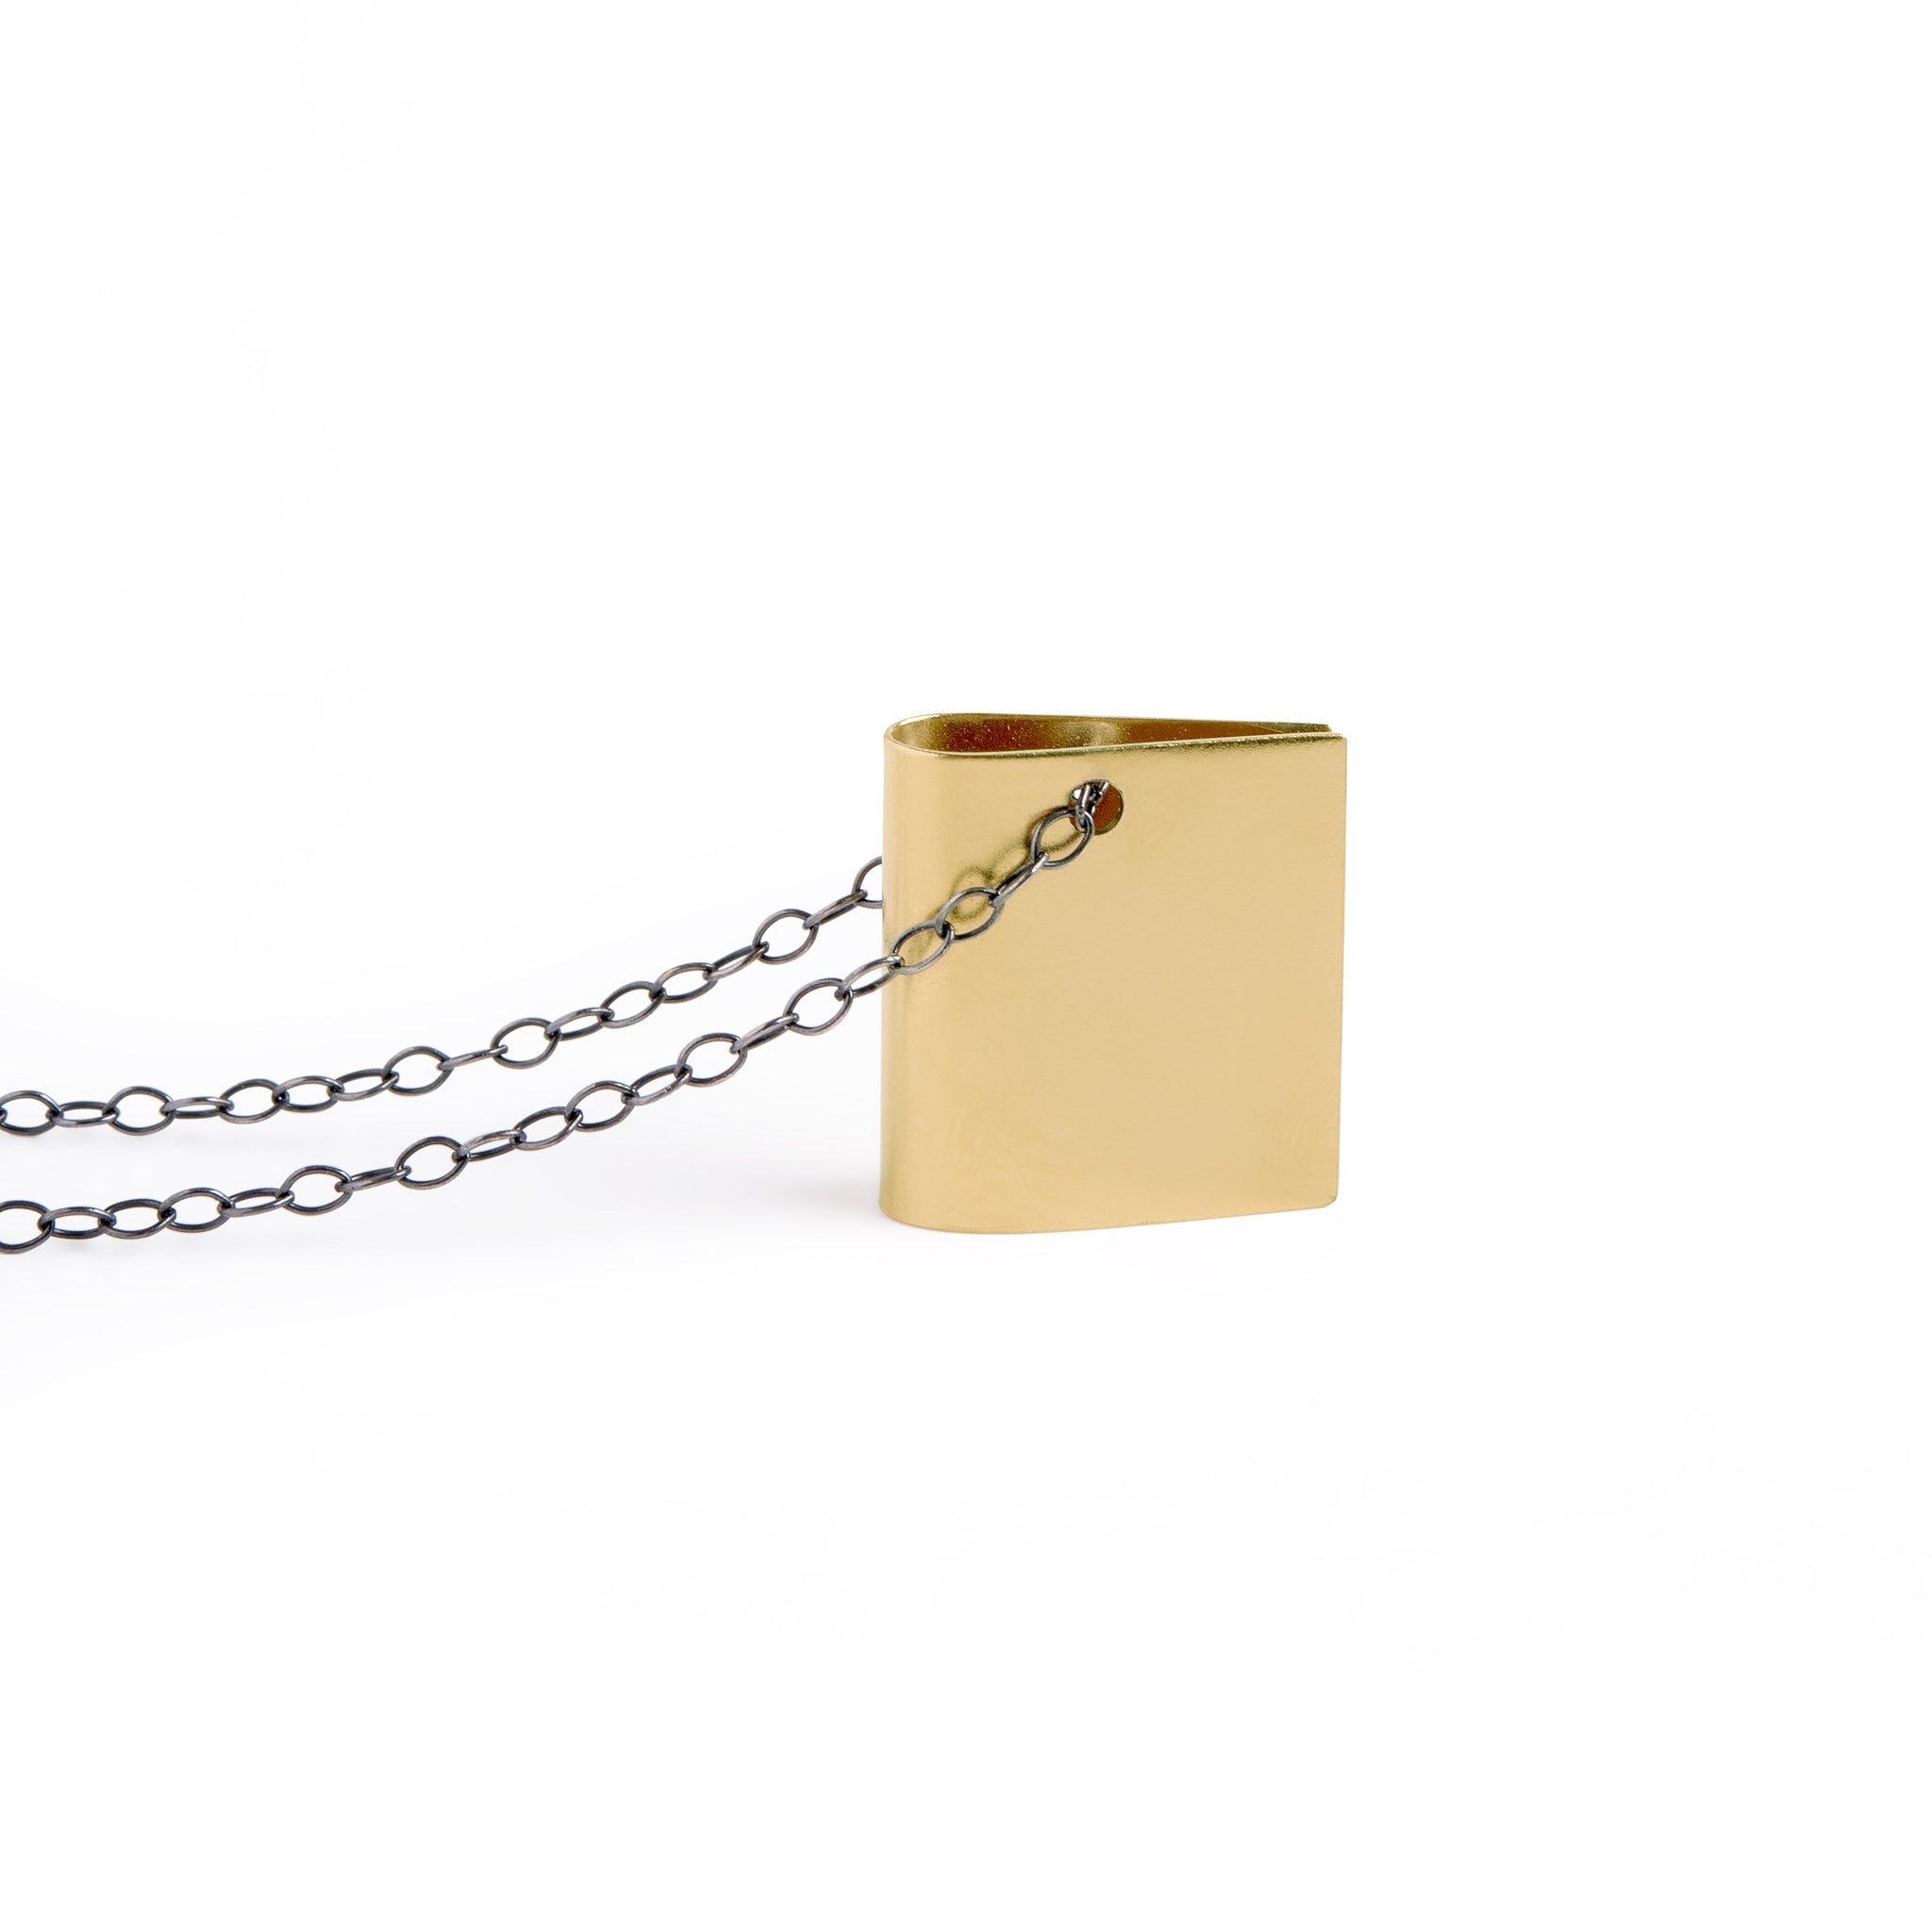 MICROFORM GOLD NECKLACE